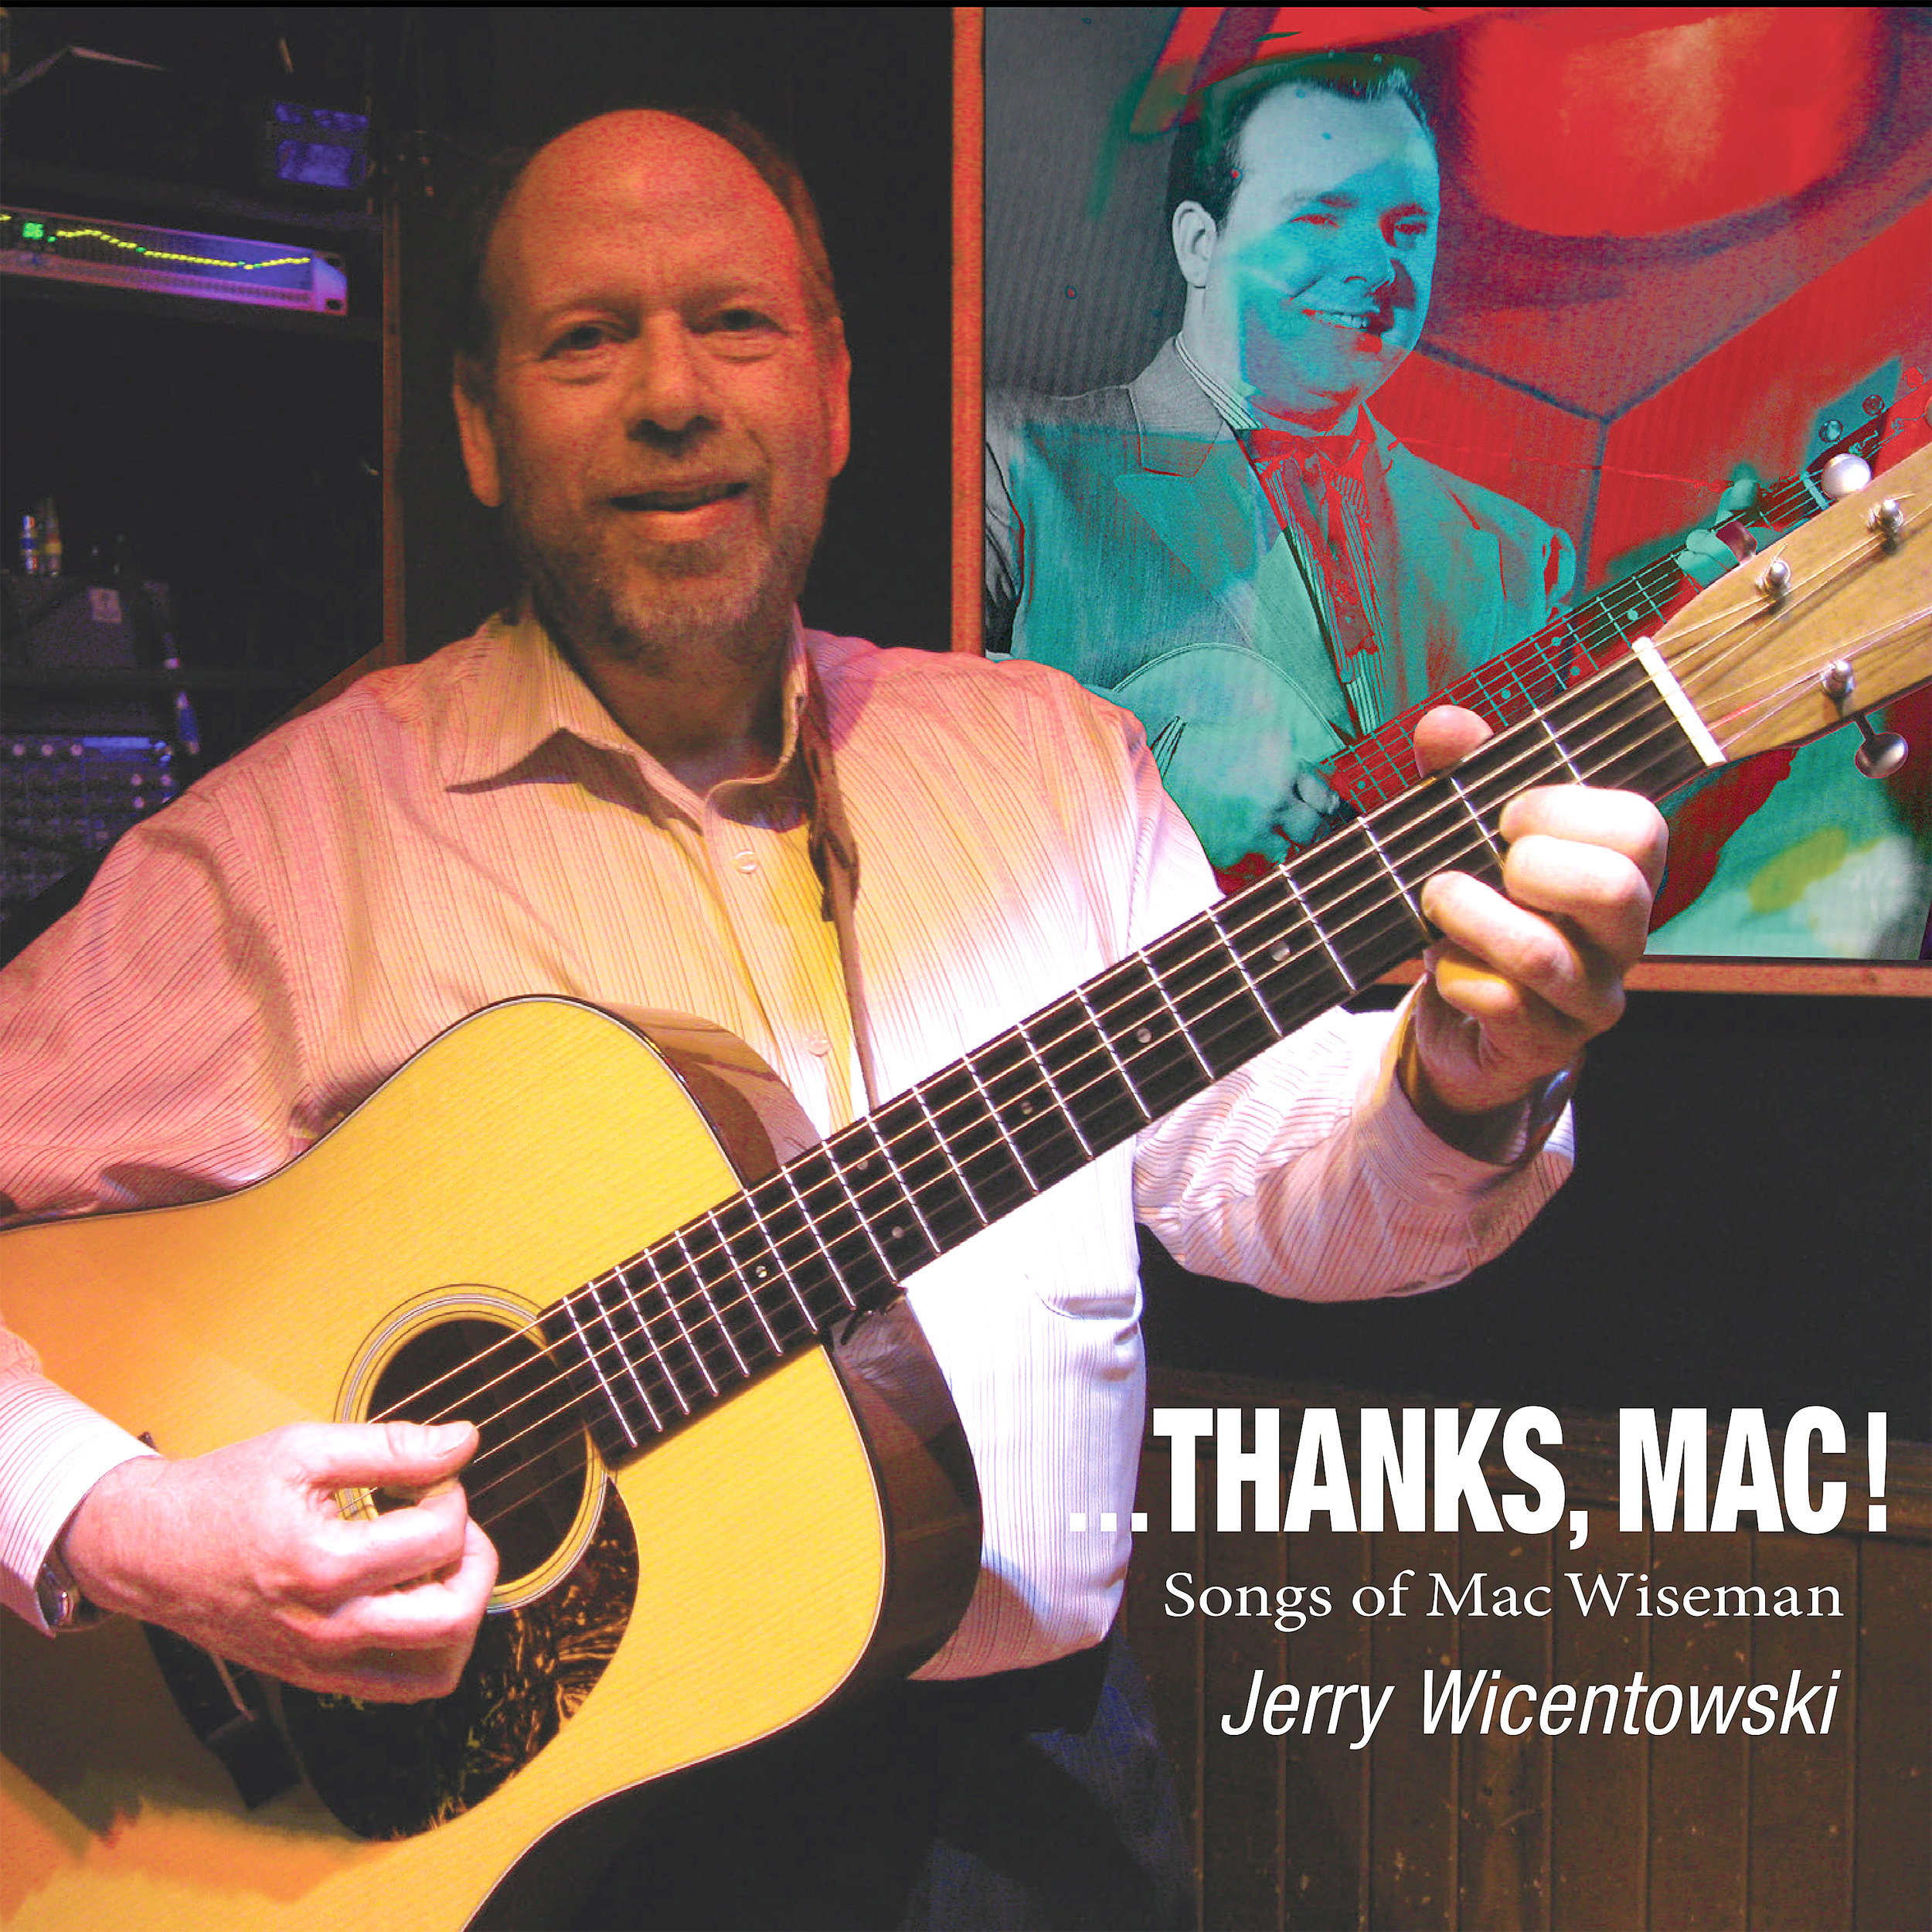 thanks-mac-album-cover.jpg